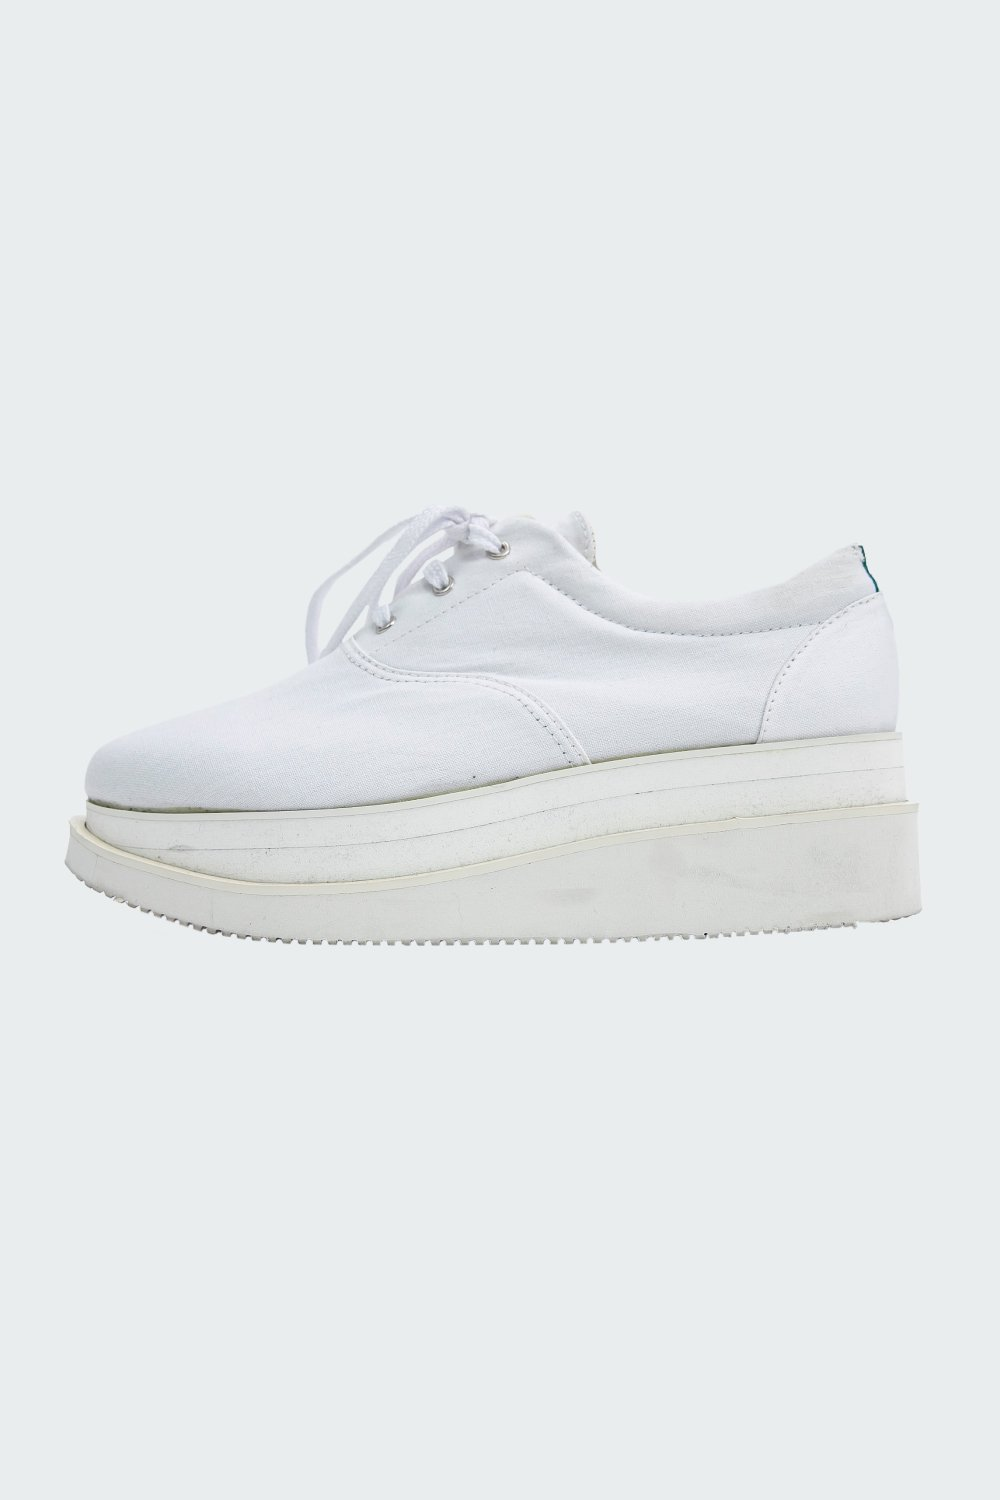 <img class='new_mark_img1' src='https://img.shop-pro.jp/img/new/icons56.gif' style='border:none;display:inline;margin:0px;padding:0px;width:auto;' />NEW WEDGE SOLE SNEACKERS WHITE